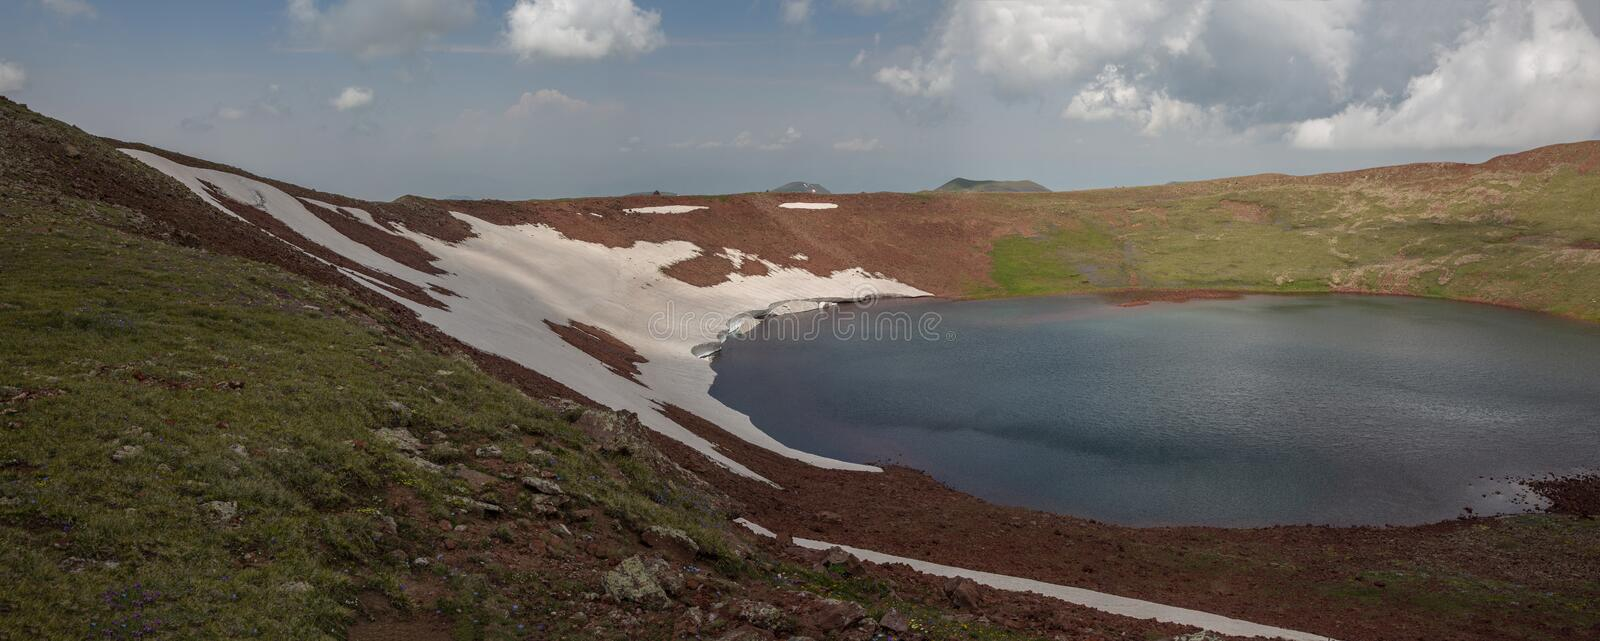 Lake At the mountains volcanic Lake. Volcanic Lake at the mountains Armenia Armenian mountains Ararat Mountains Geghama Mountains royalty free stock photography